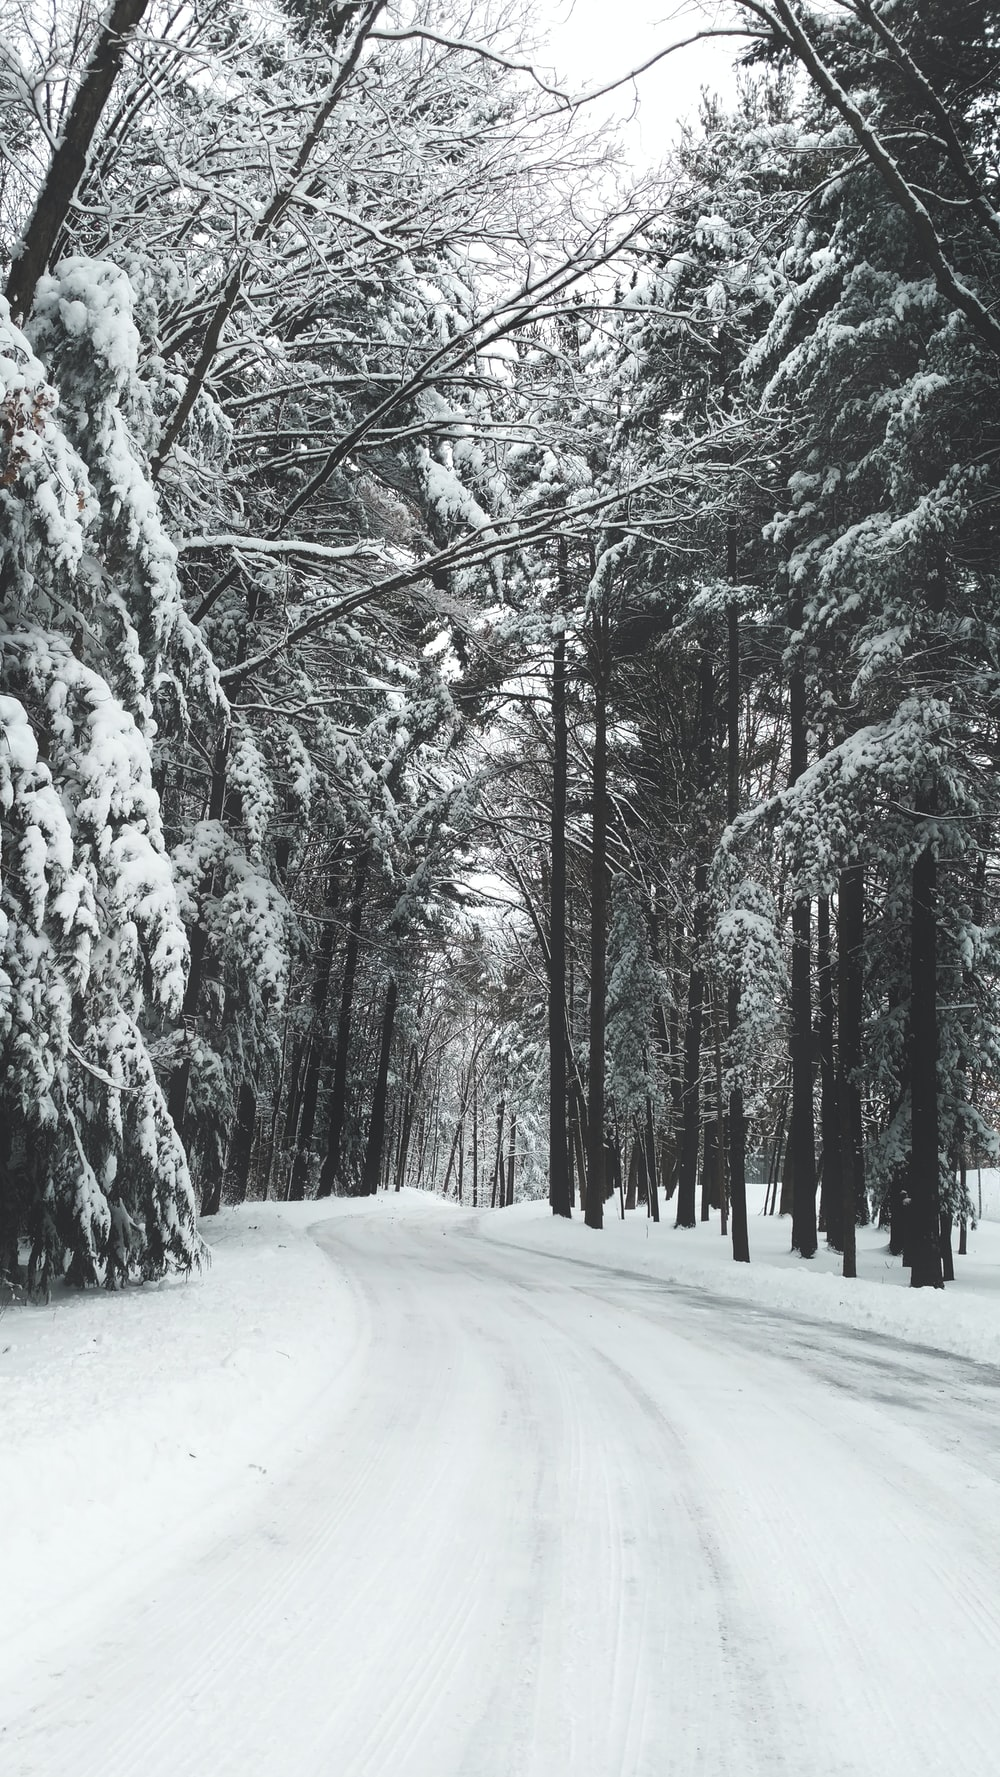 road surrounded by trees during winter